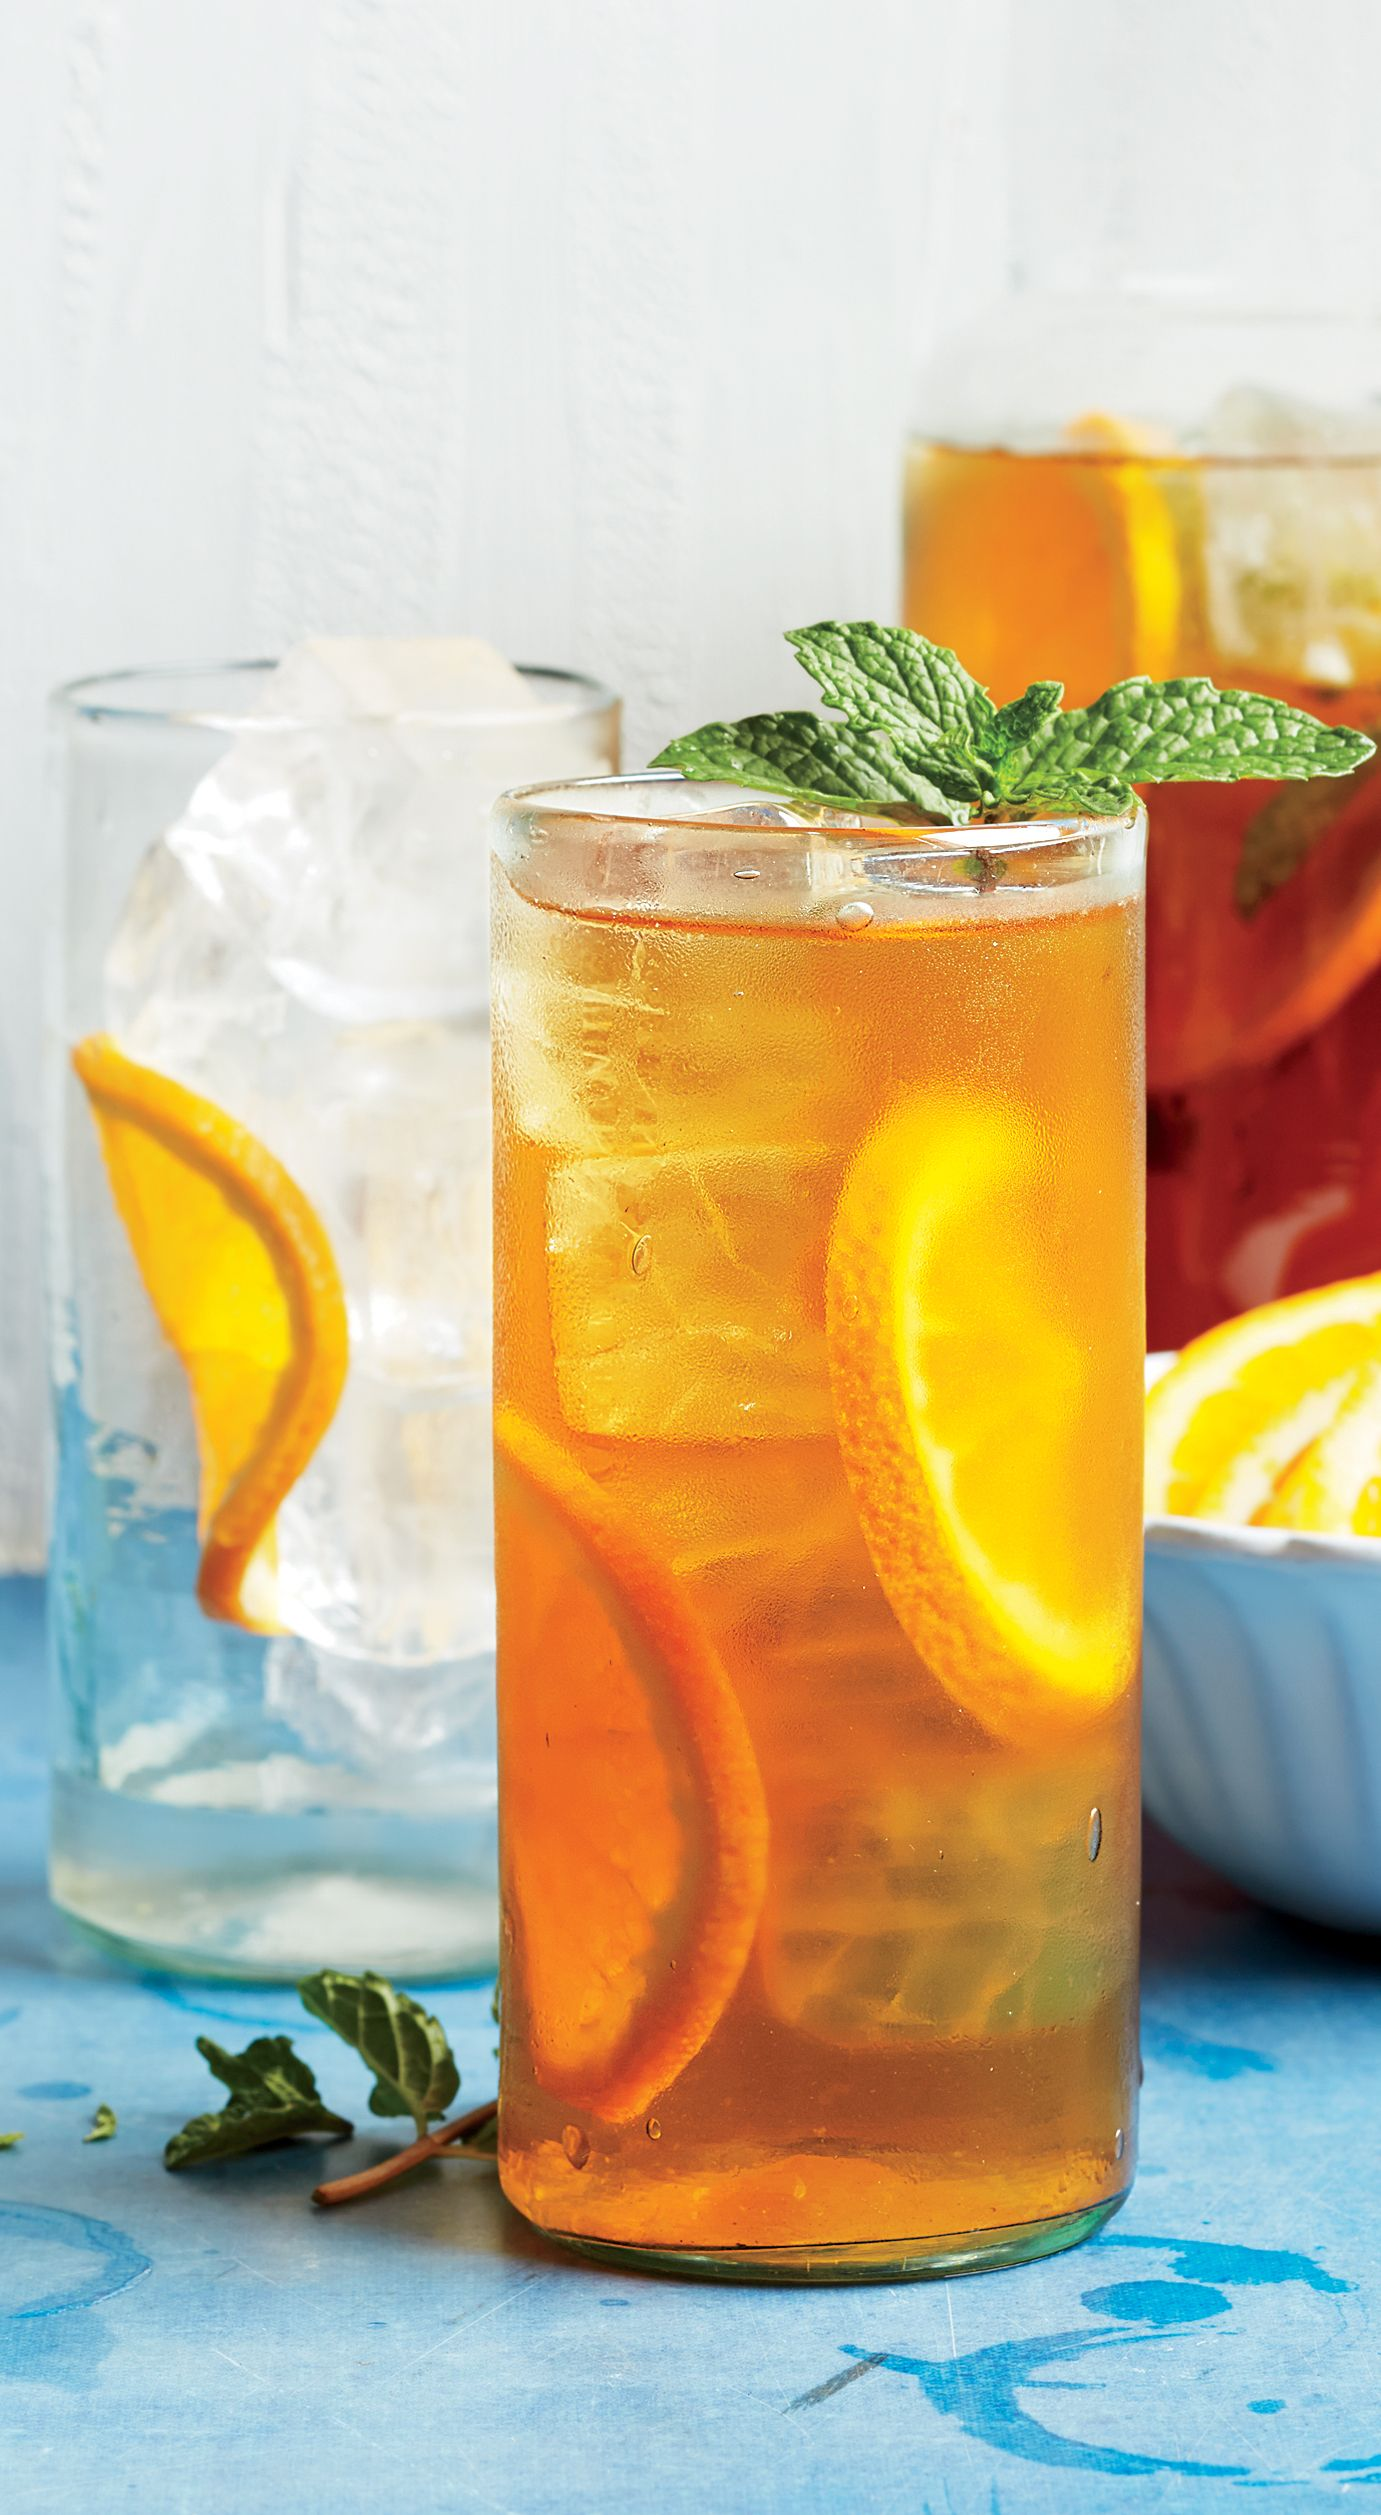 Turn this refreshing orange iced tea into a cocktail with a little gin.